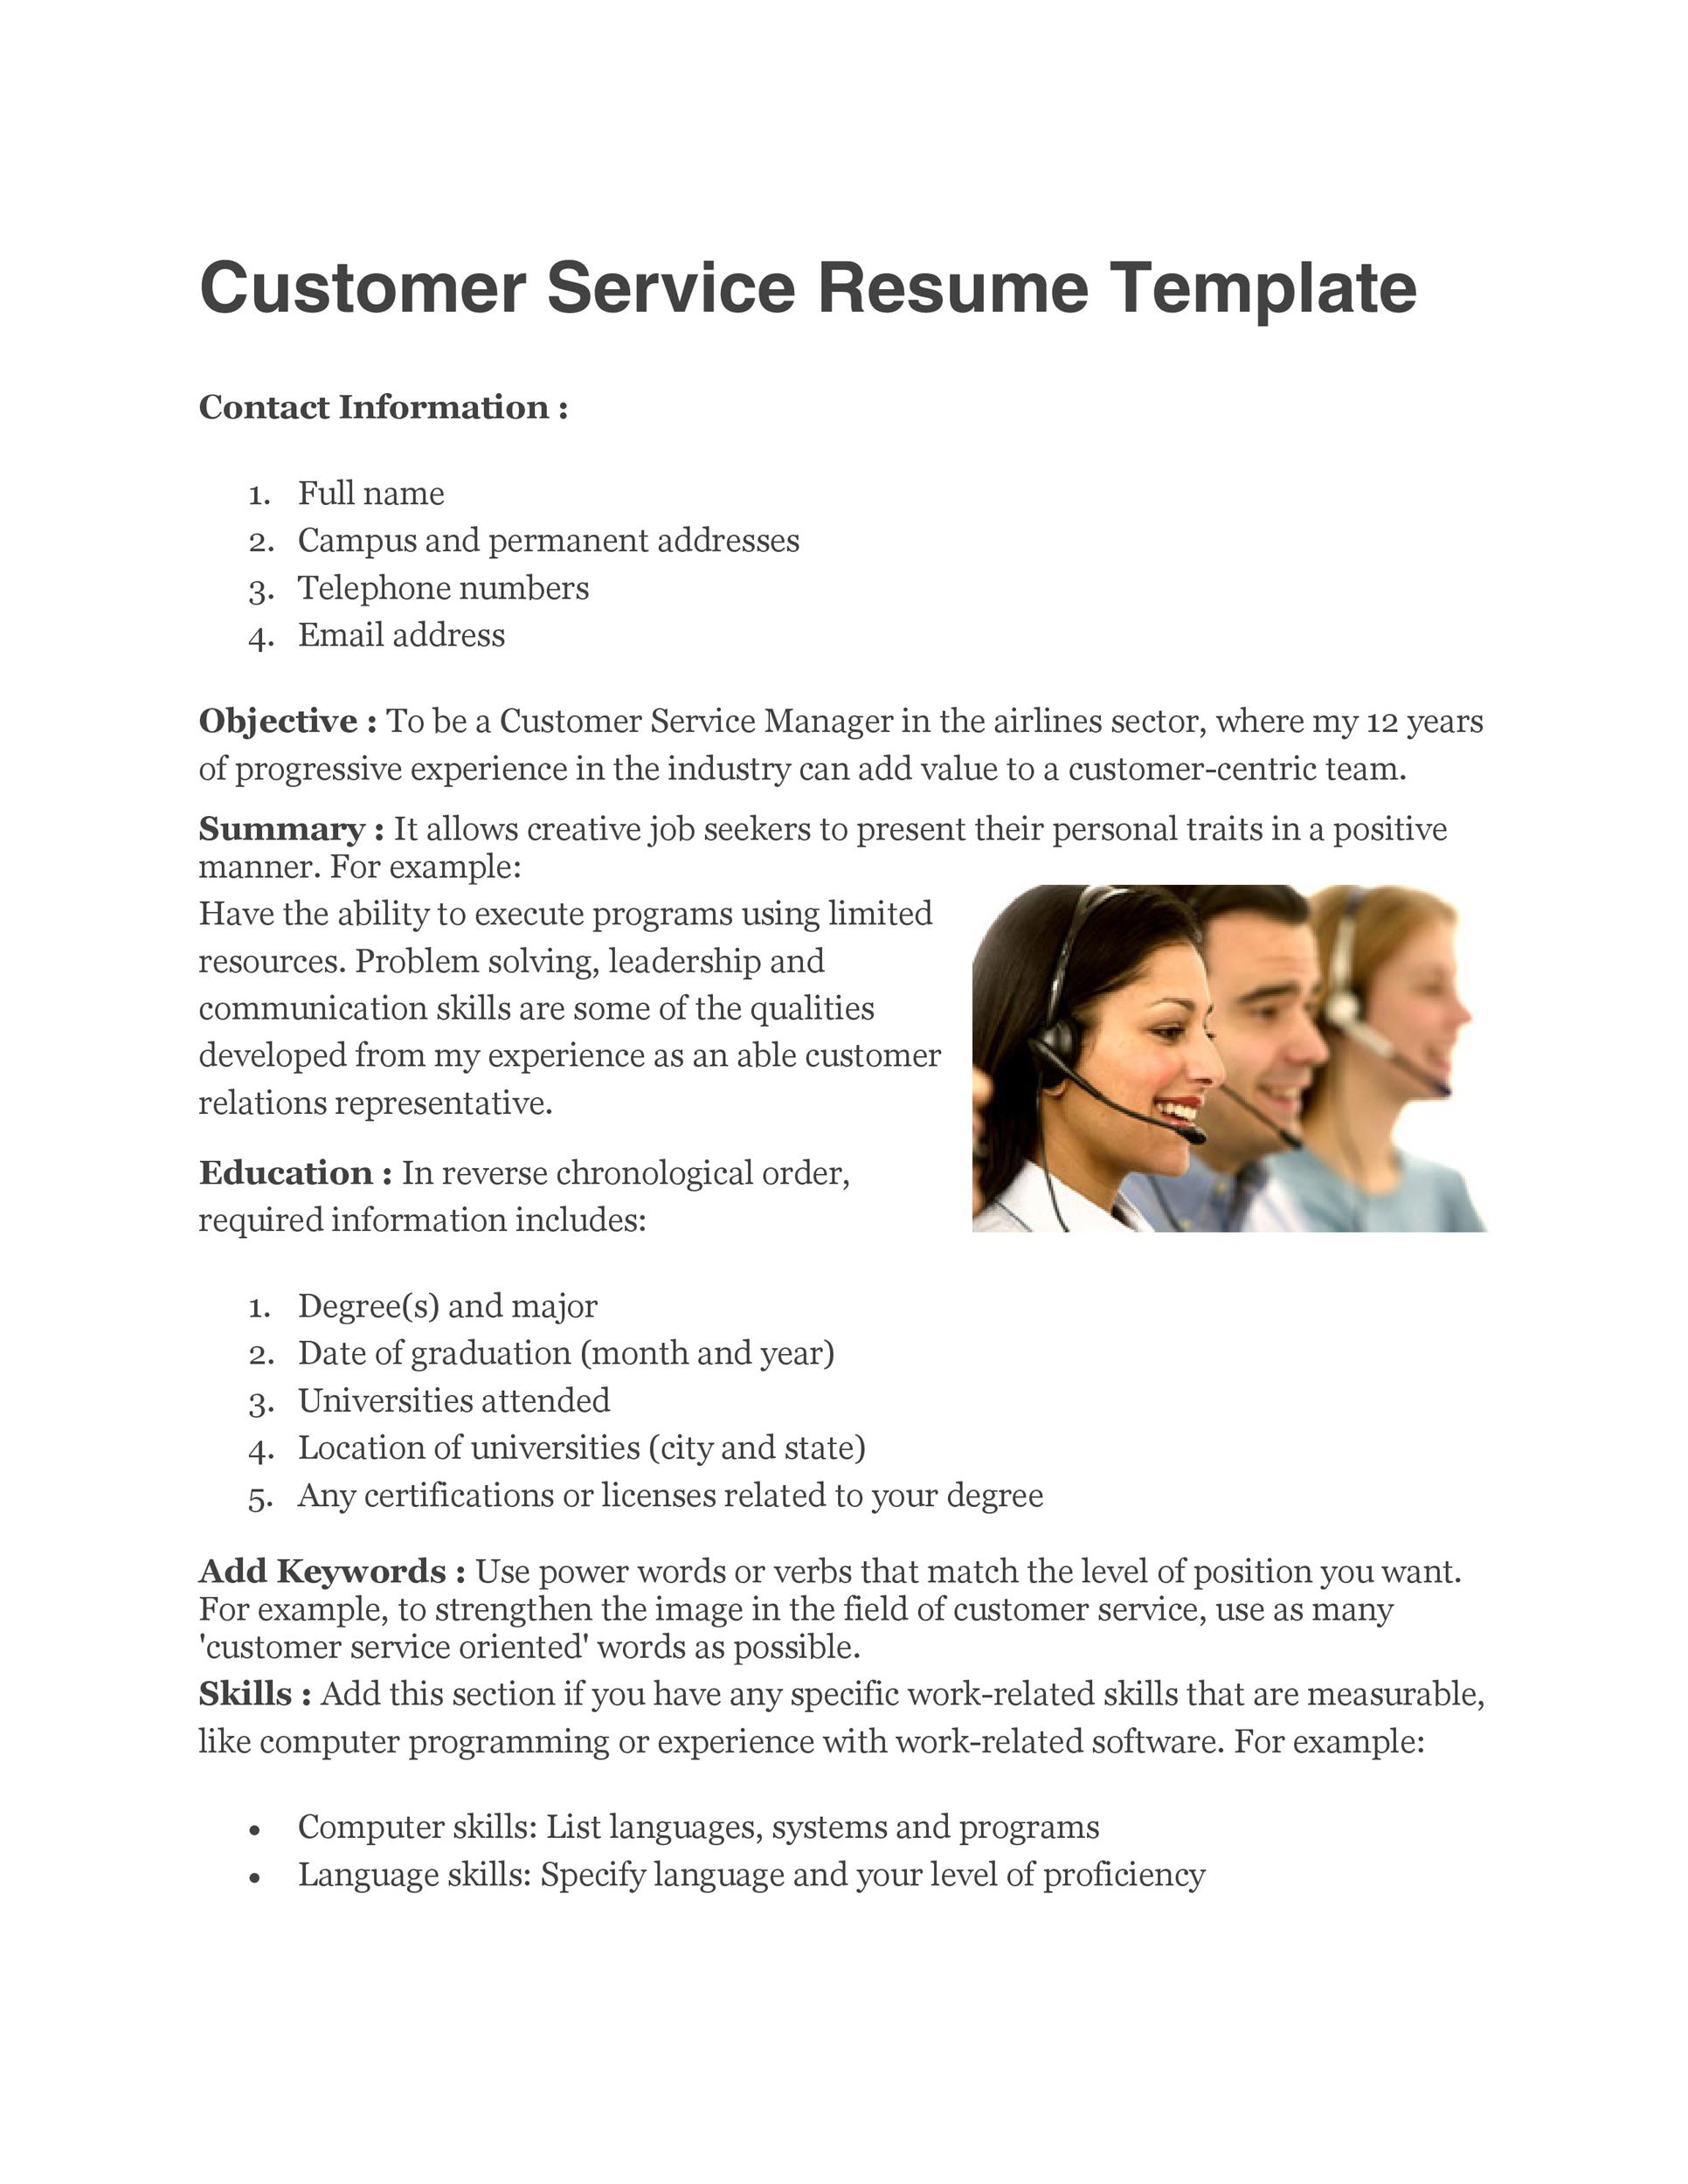 skills in customer service for resumes